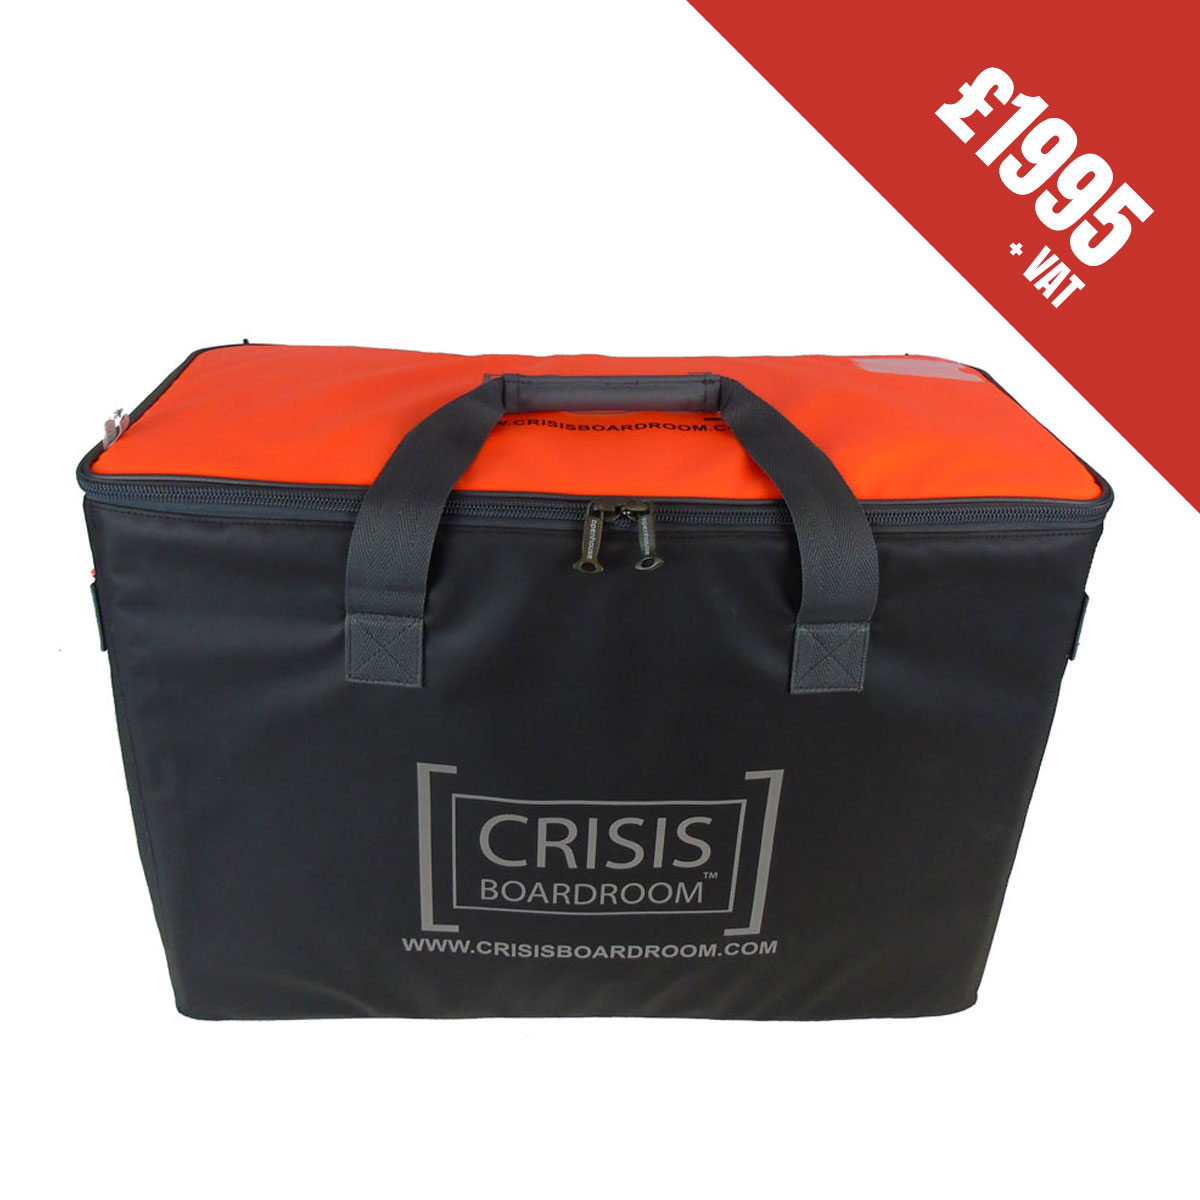 Product Image - Crisisboardroom